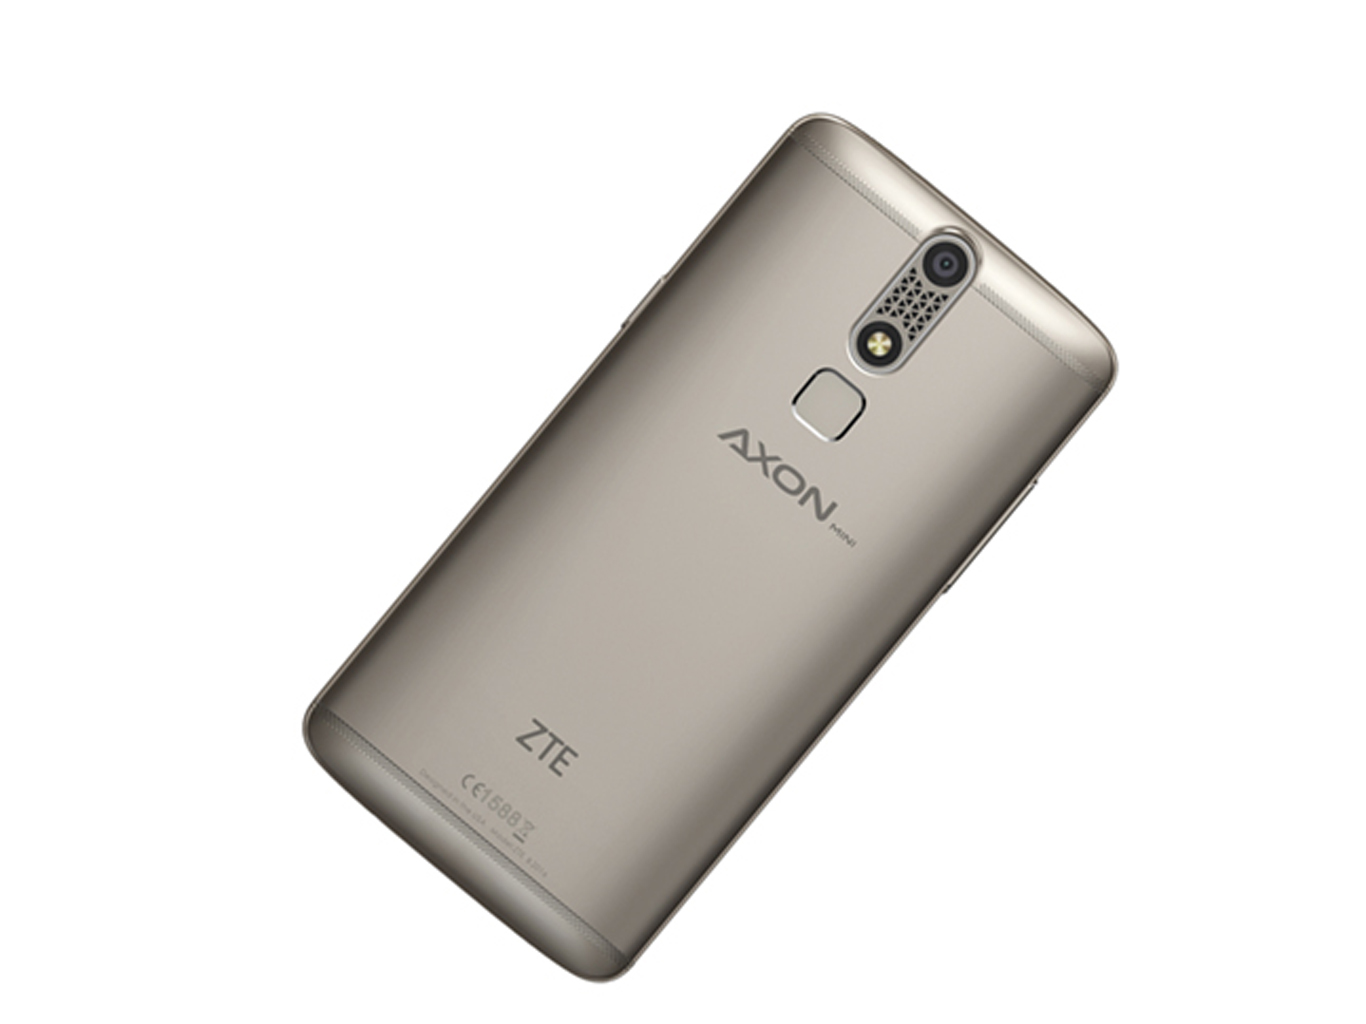 Zte Axon Mini Premium Smartphone Review Notebookchecknet Reviews